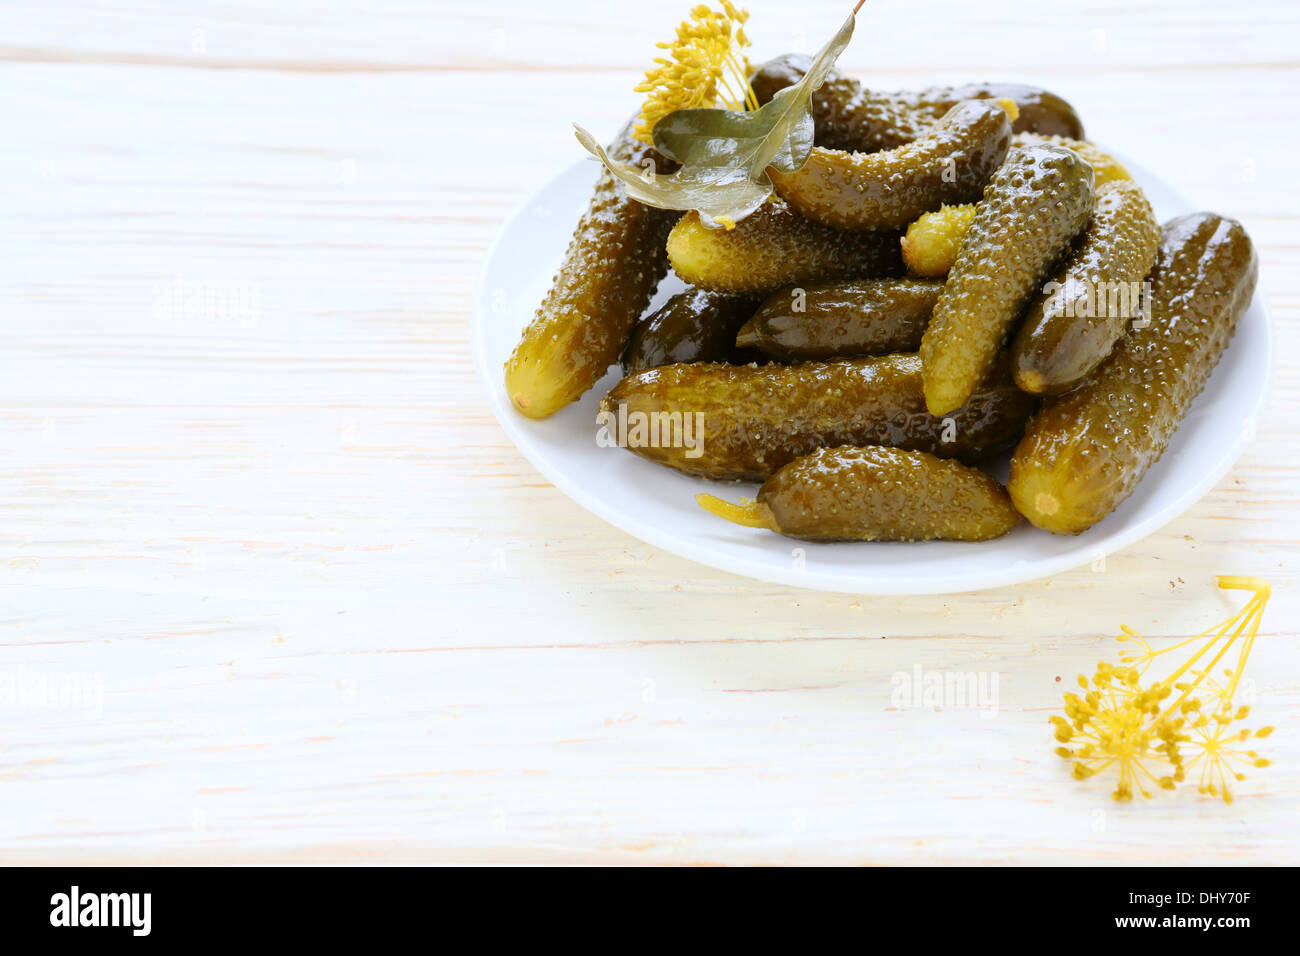 pickled cucumbers on a white plate, food - Stock Image